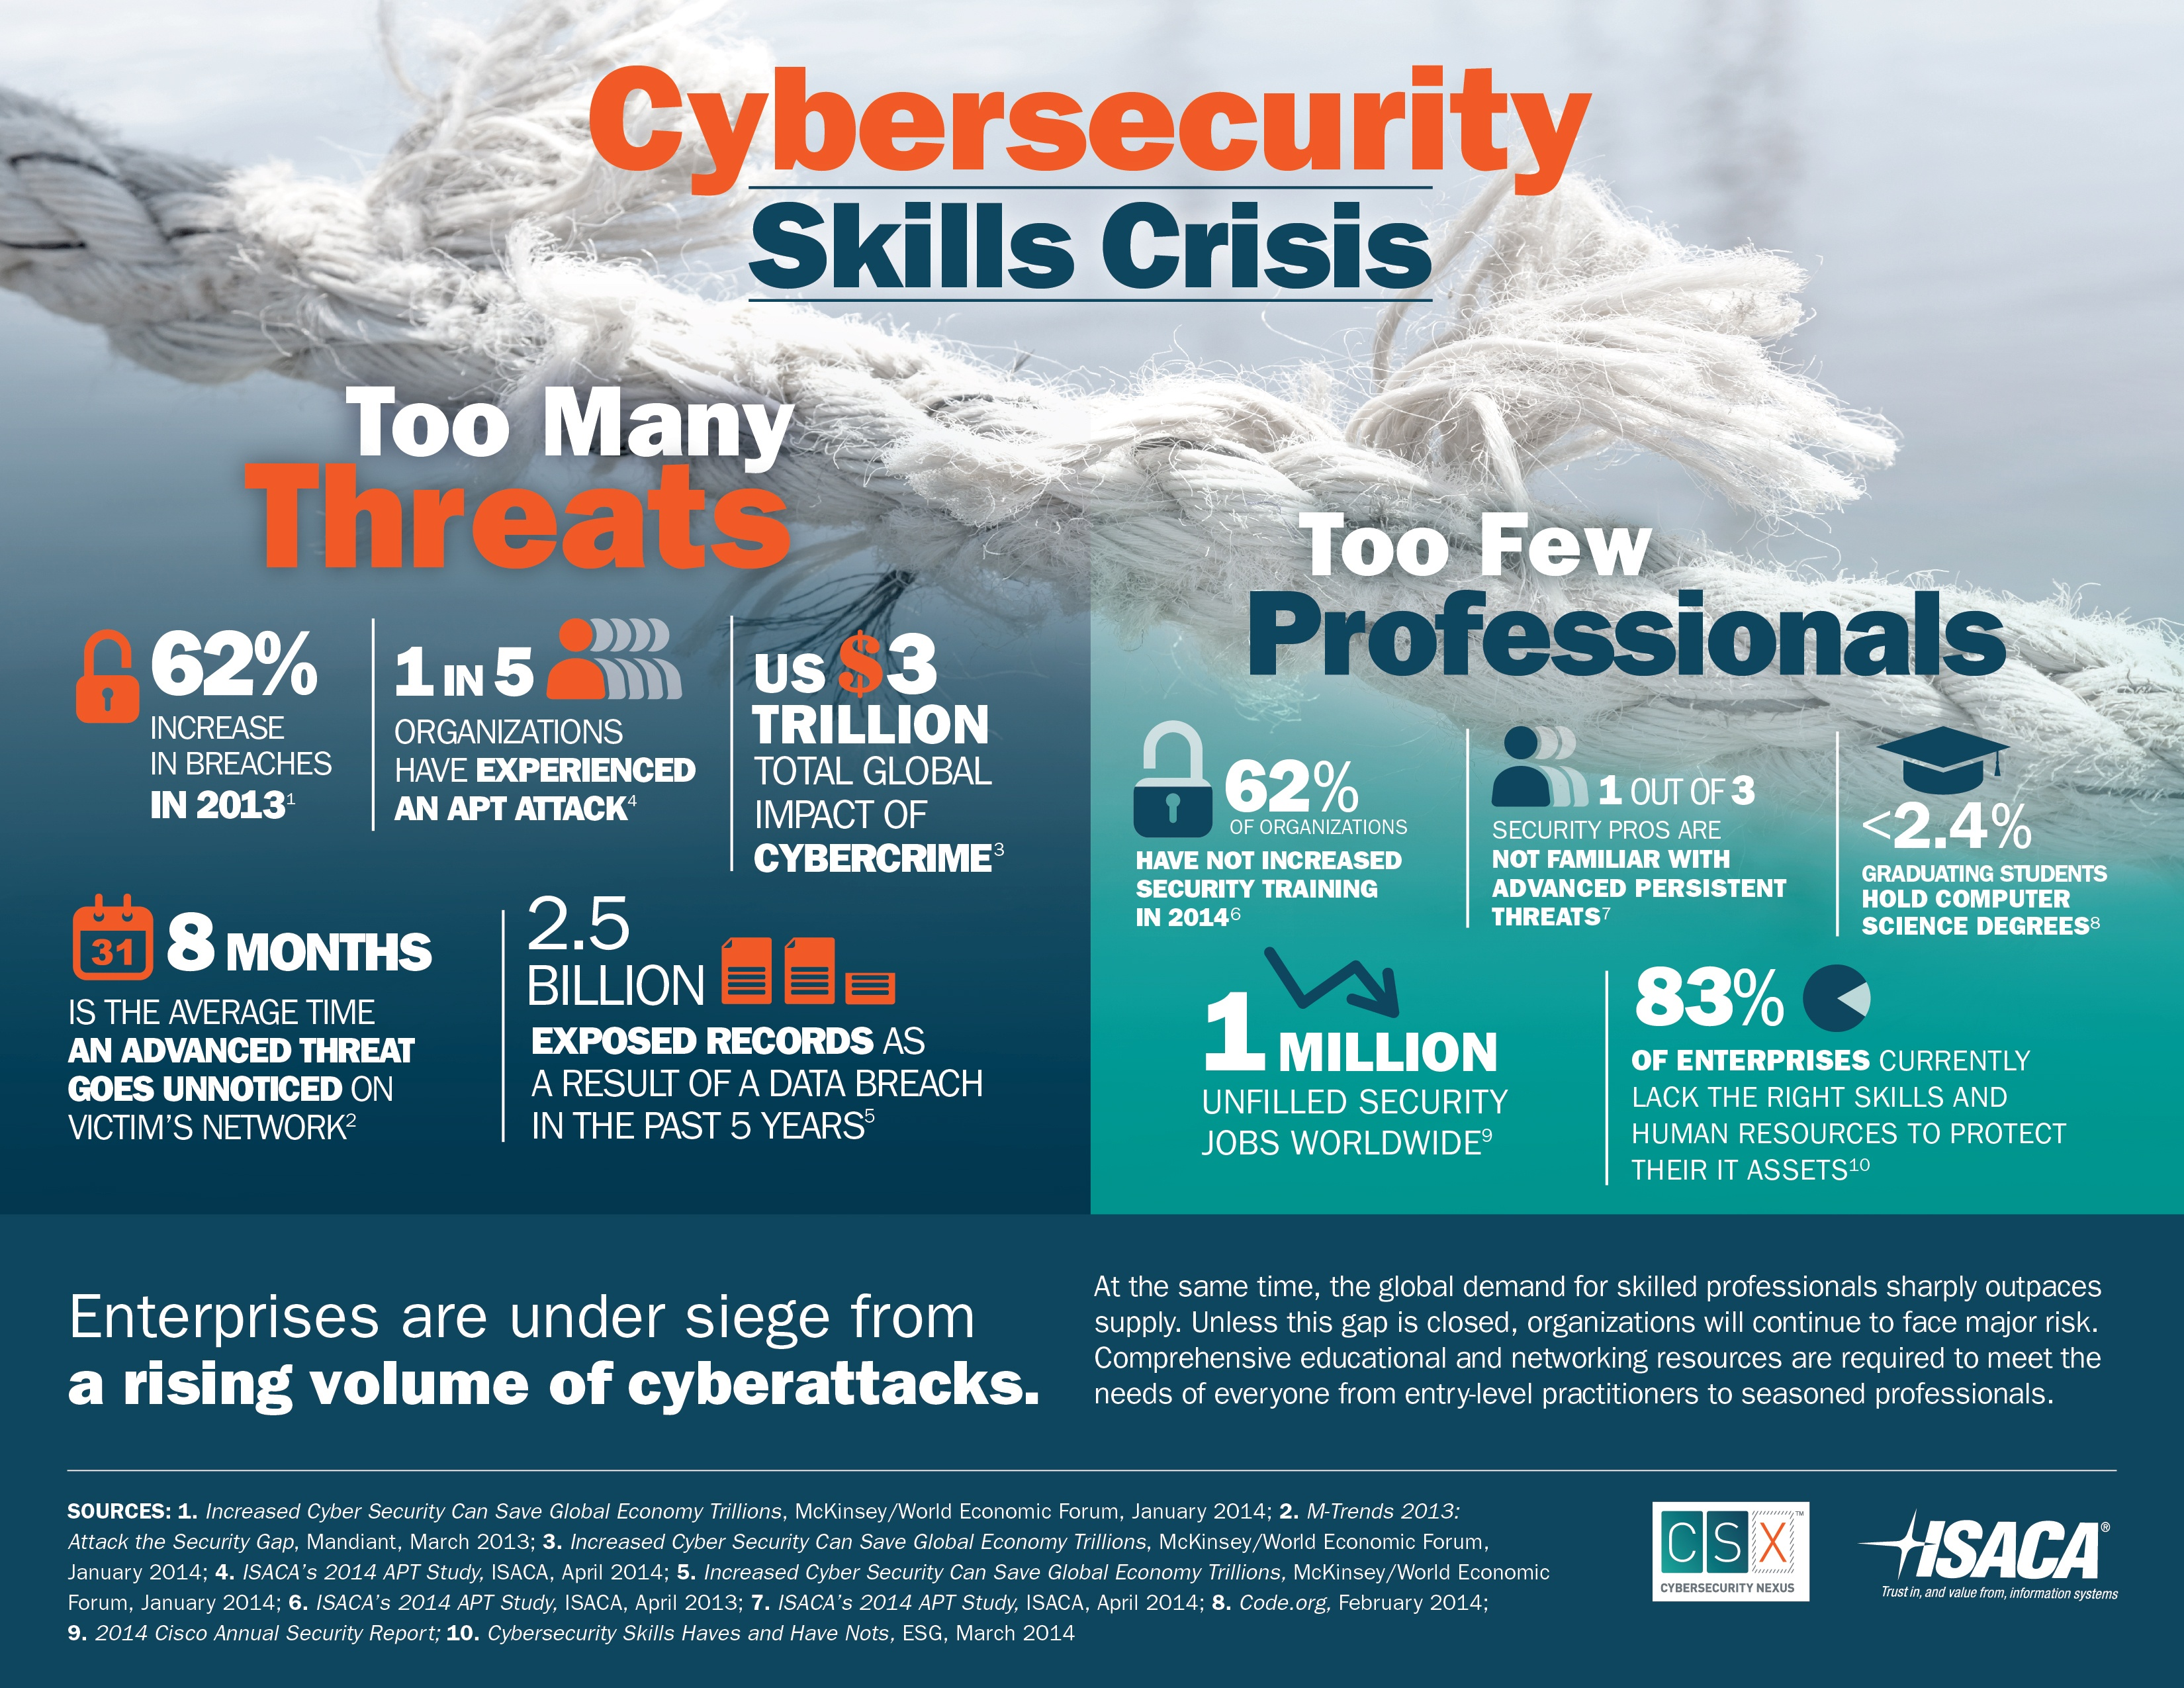 A visual look at the cybersecurity skills crisis by ISACA_Cybersecurity_Infographic1